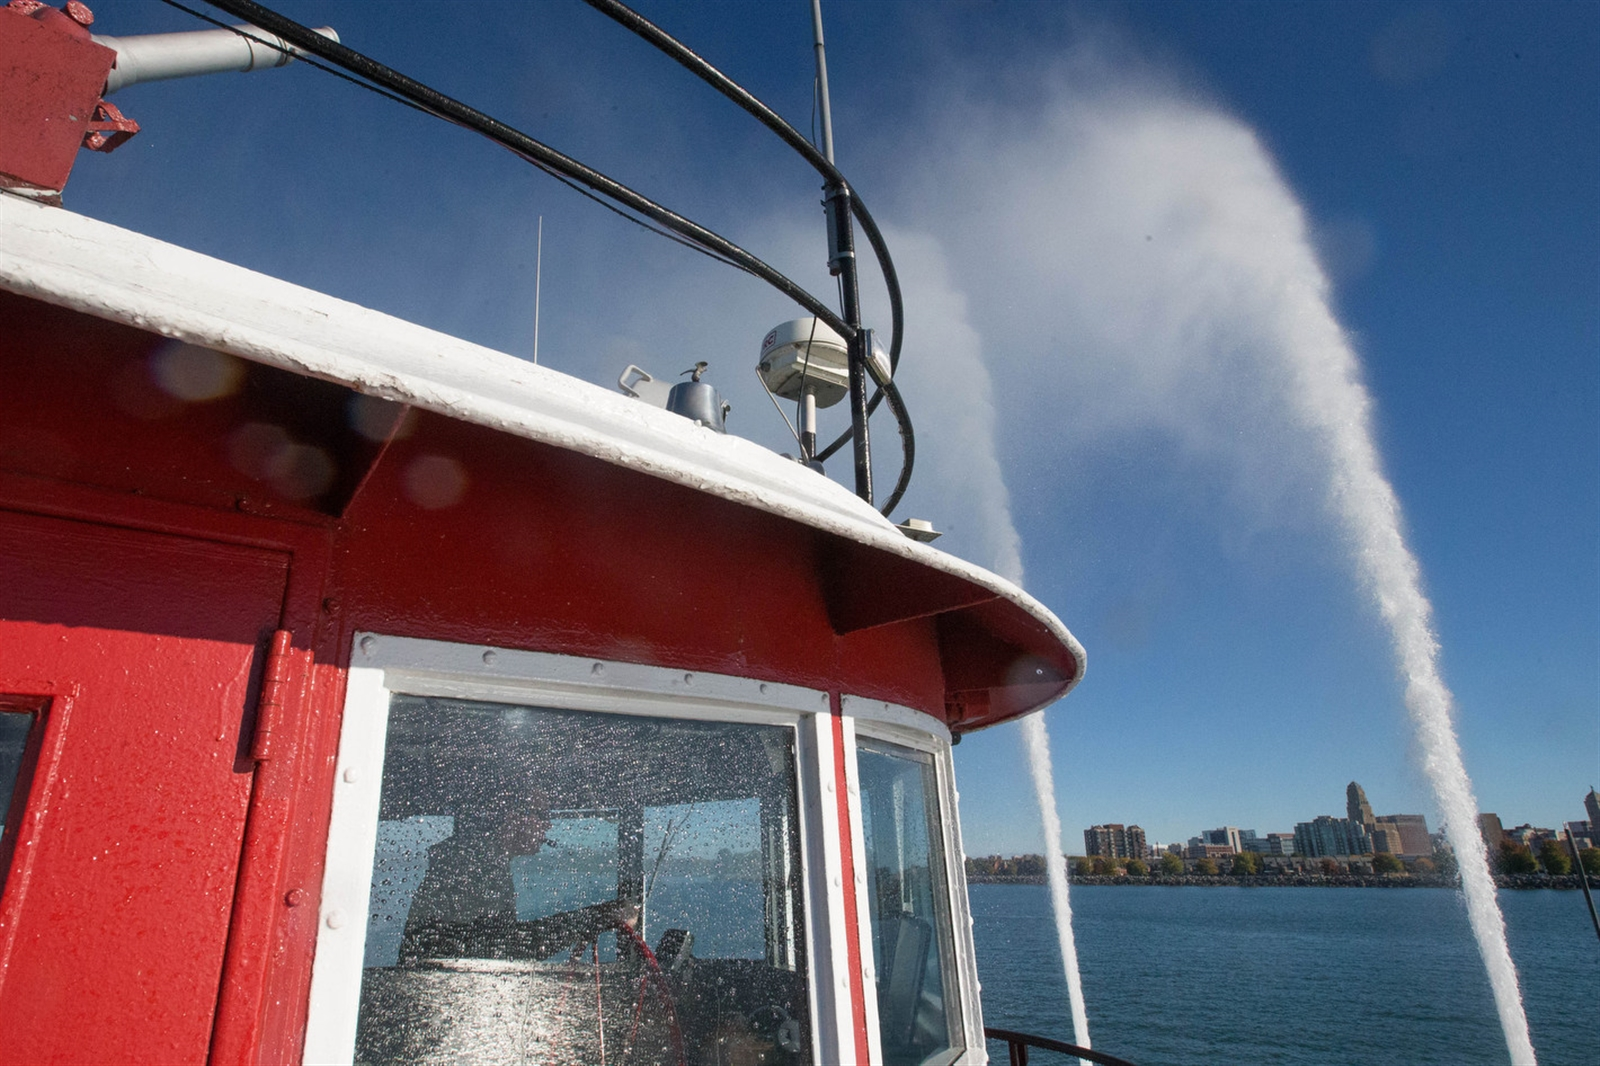 The sprays of water from the water cannons of the Edward M. Cotter are one of the most spectacular sights of the Buffalo waterfront. (Derek Gee/Buffalo News)